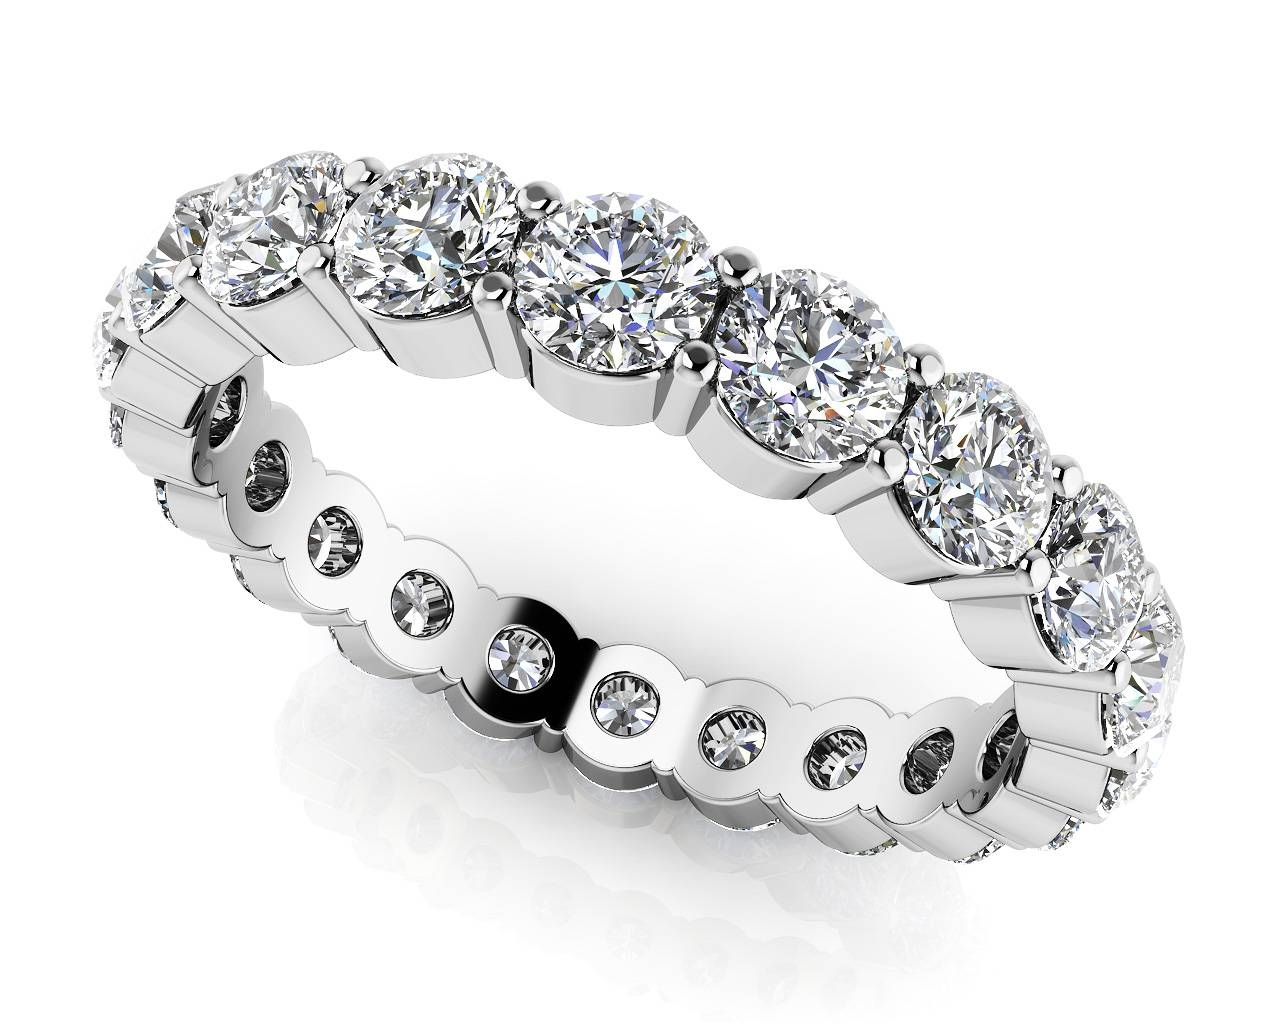 Large Collection Of Quality Diamond Eternity Rings & Bands Intended For Latest Platinum Anniversary Rings (View 18 of 25)